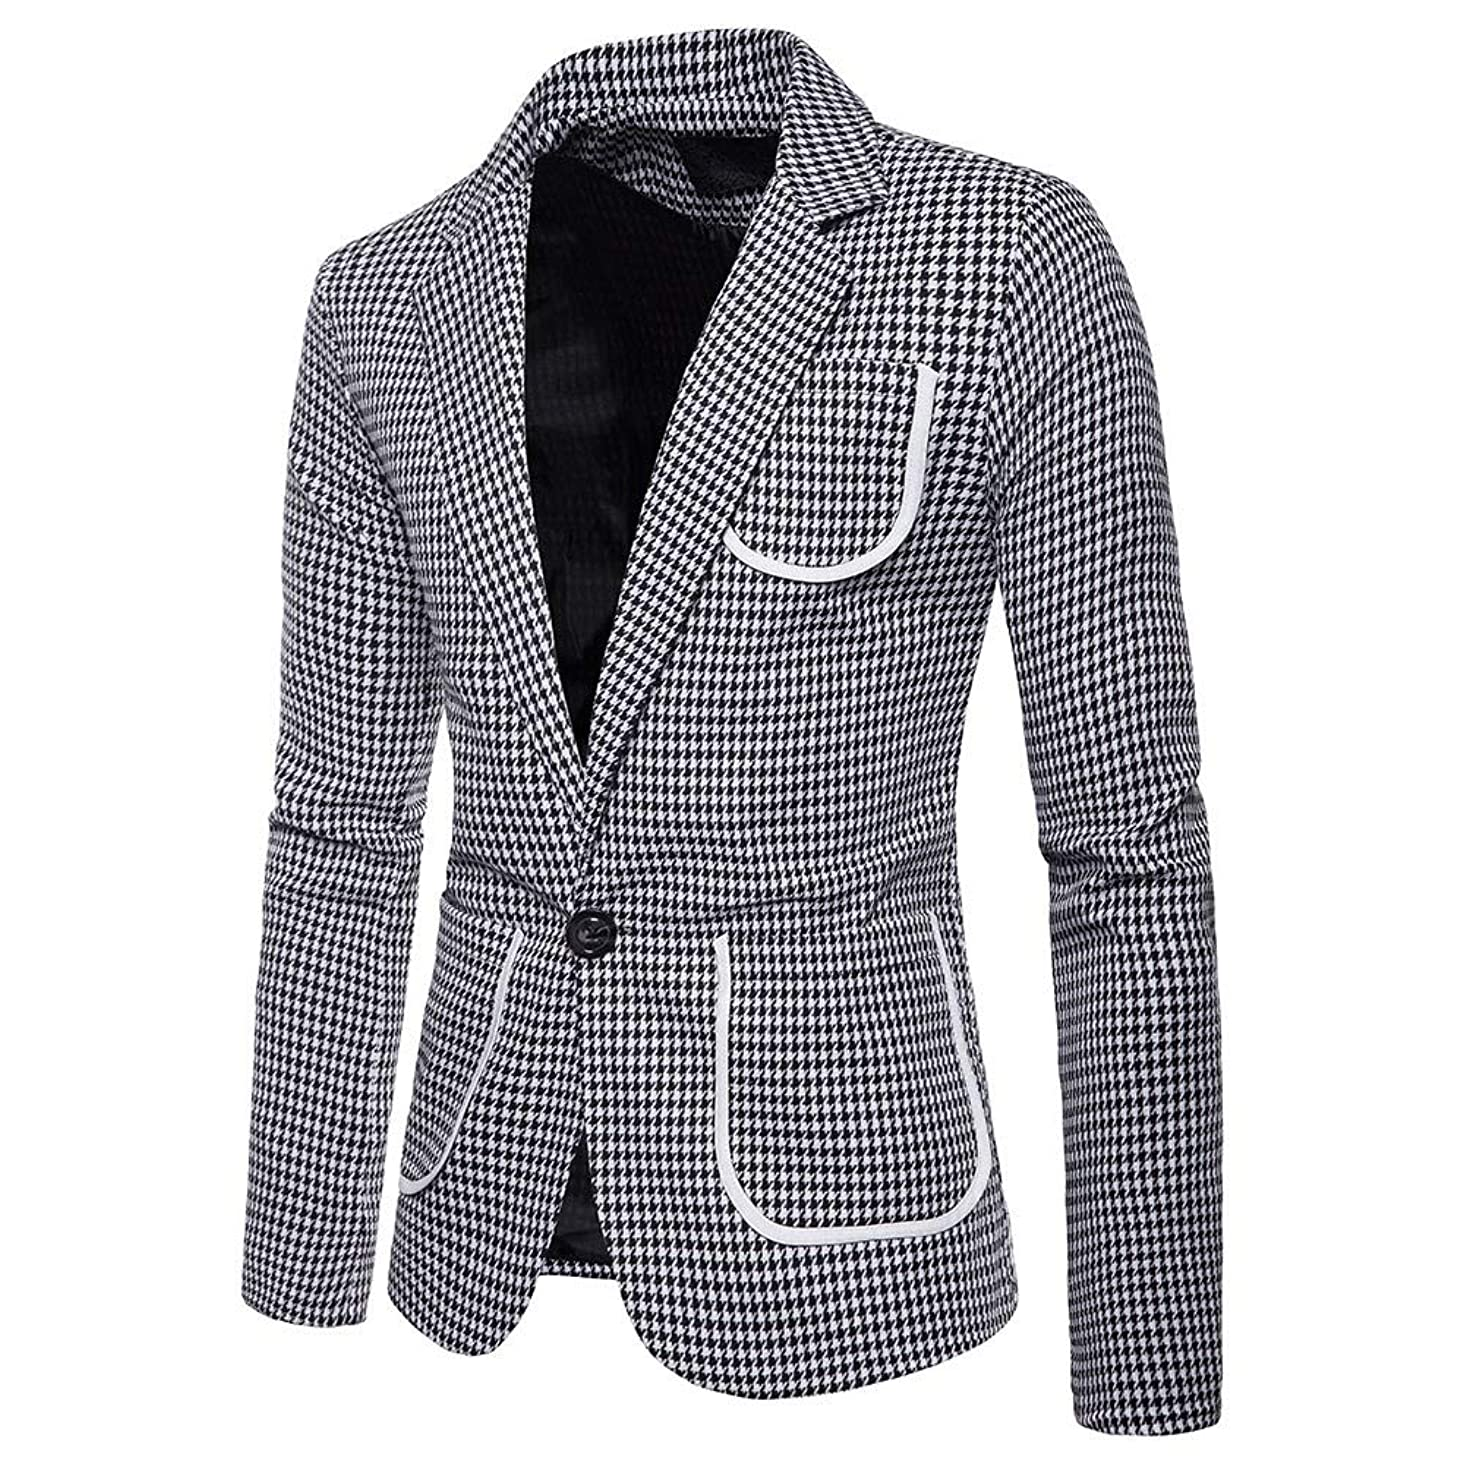 Charm Men's Casual One Button Fit Suit Blazer Coat Jacket Pineapple Printed Top